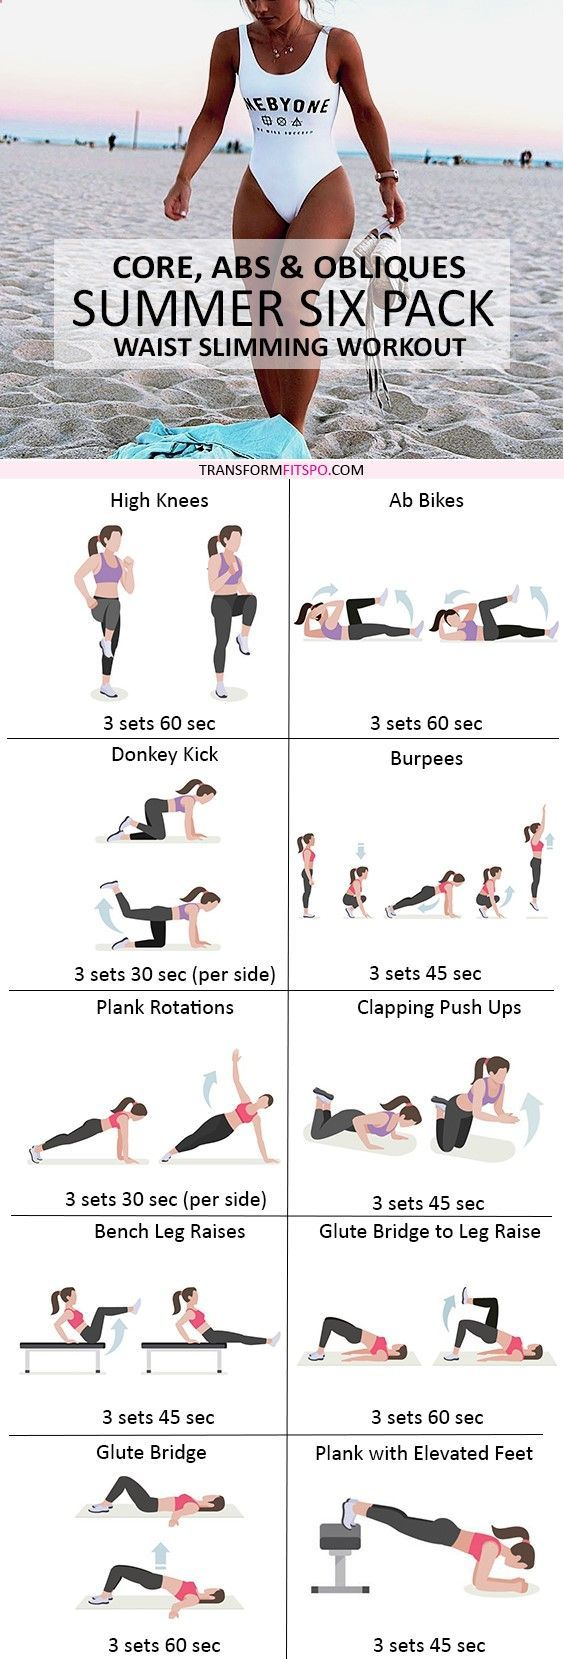 Gym & Entraînement : Repin and share if this gave you rapid results so you could wear your bikini wi